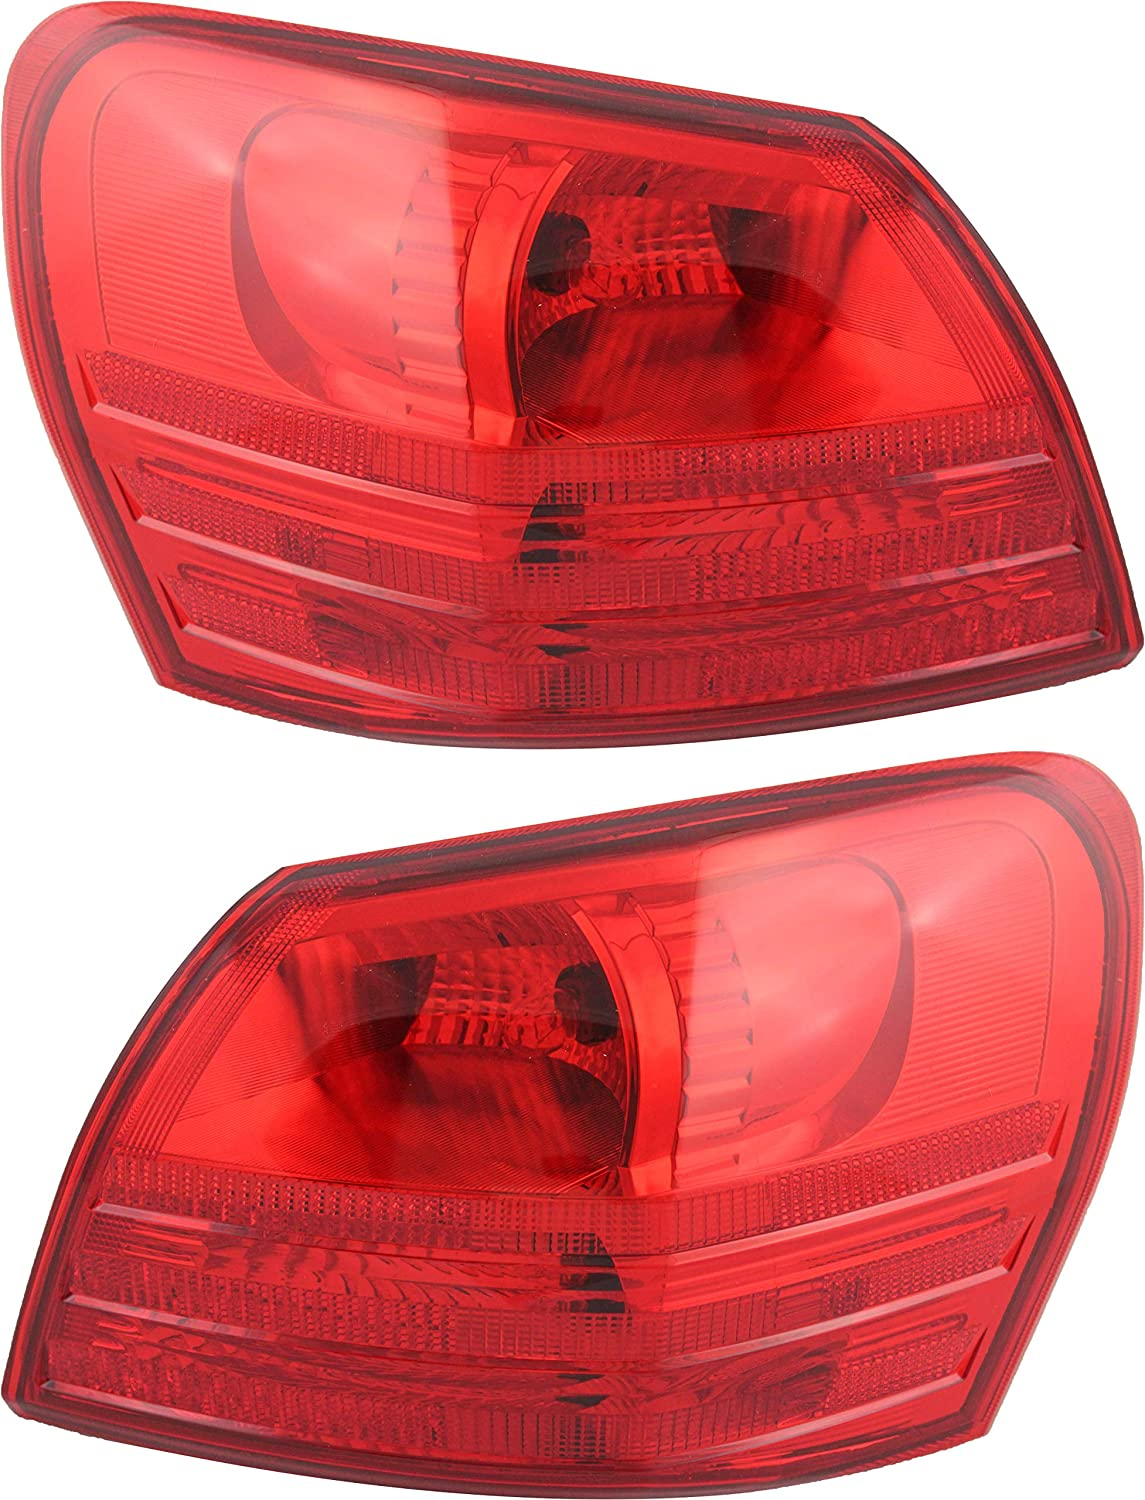 For Nissan Rogue Outer SEAL限定商品 Tail Light 2010 2009 2011 2013 2008 高額売筋 2012